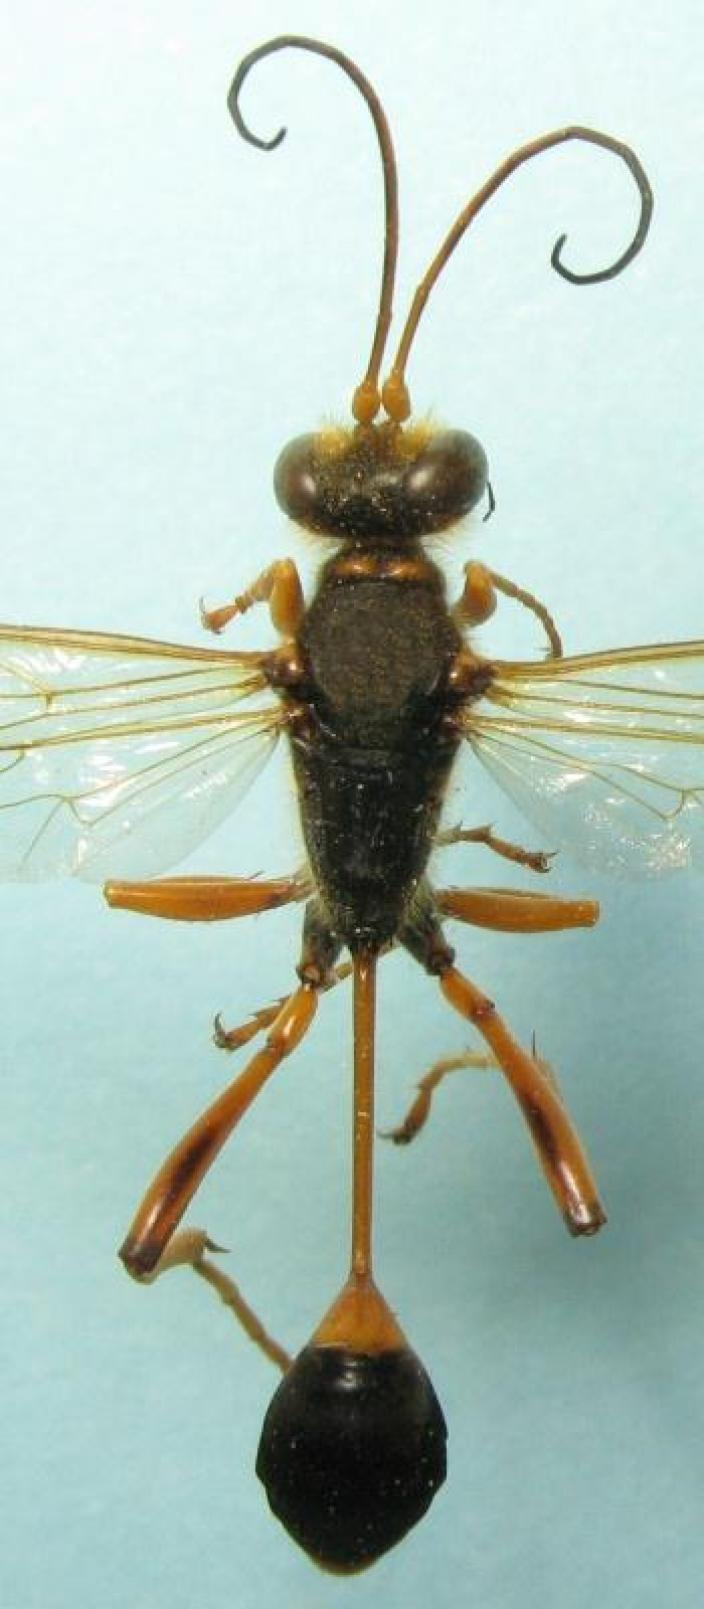 View of a mounted wasp specimen